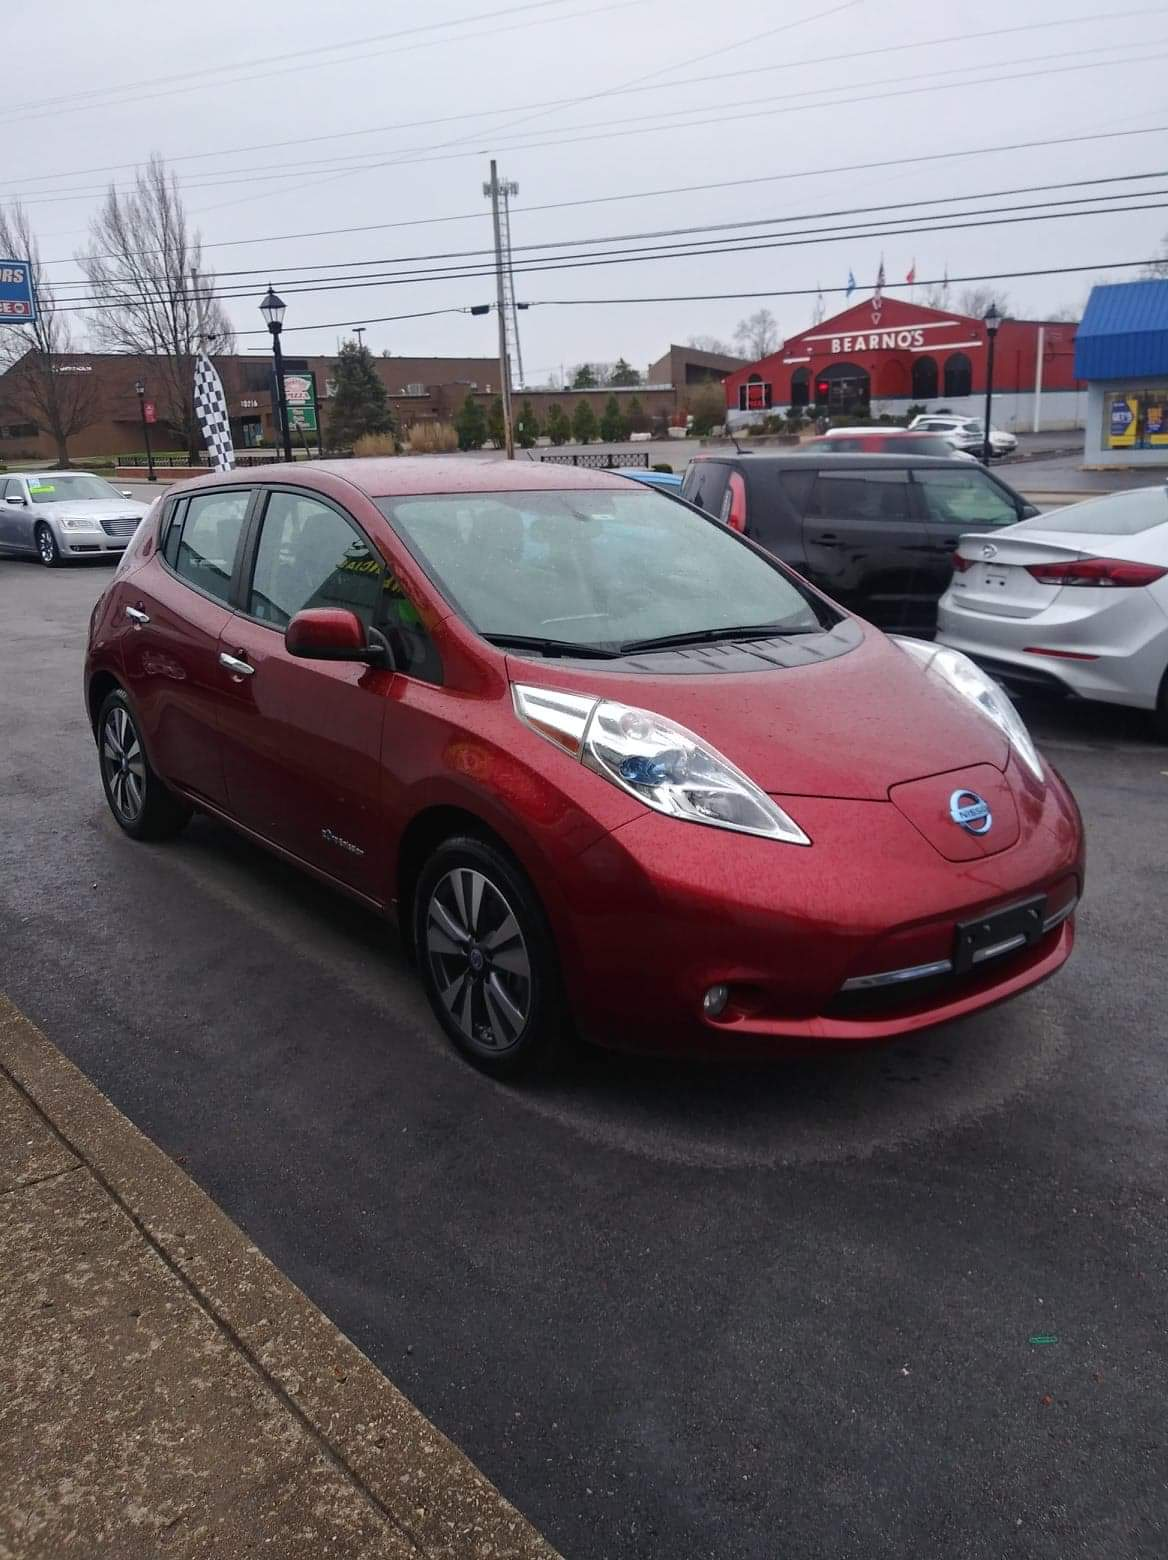 A red Nissan Leaf sits on the tarmac in front of a few other cars.